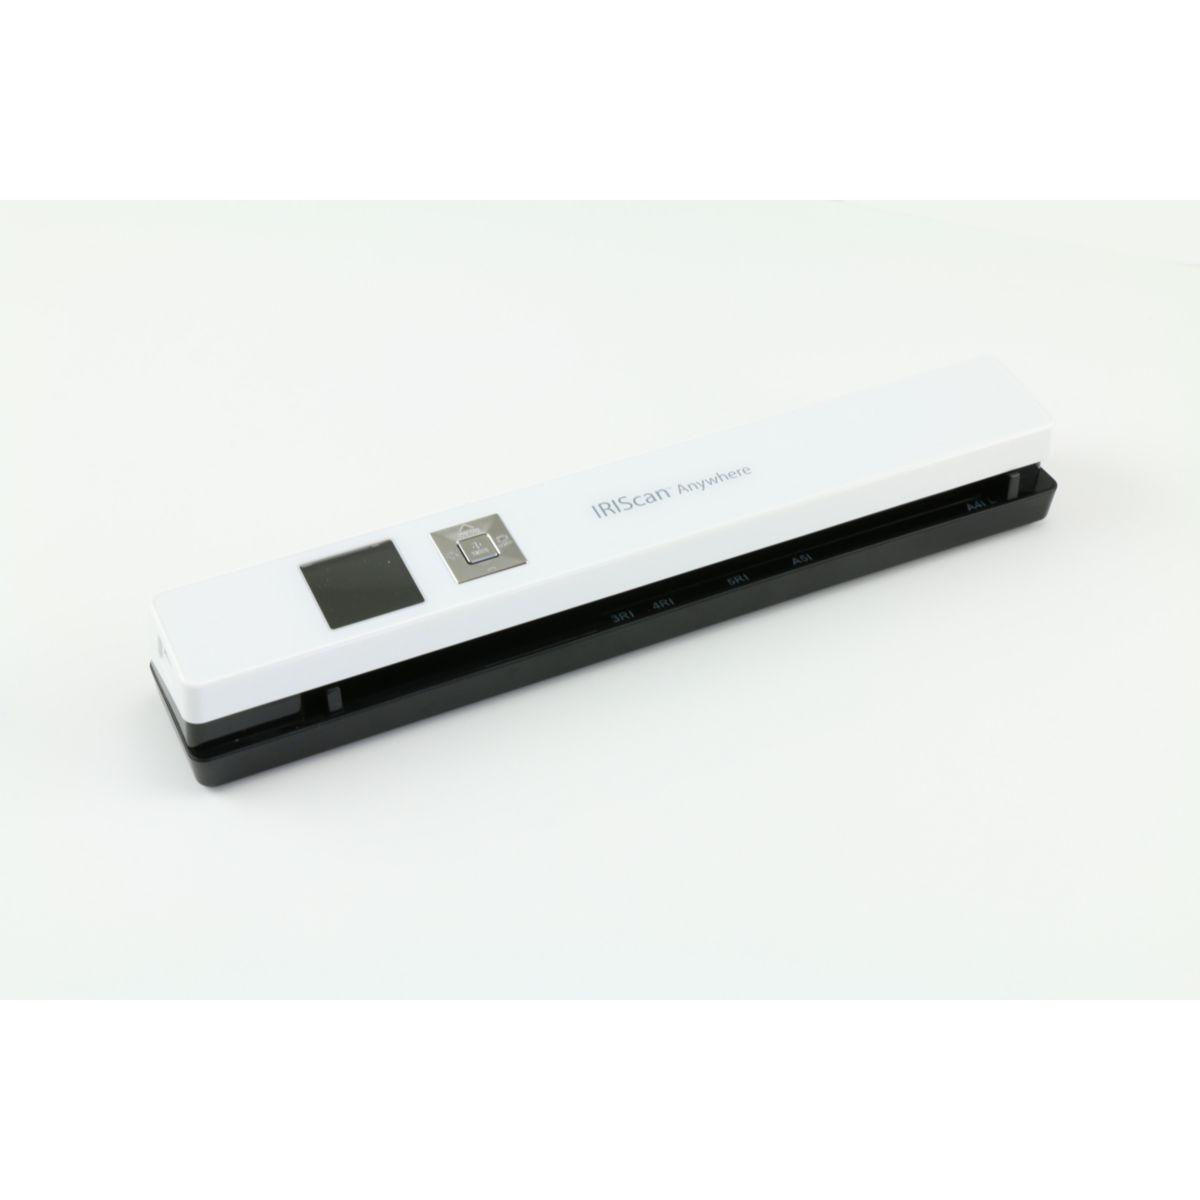 Scanner portable iris iriscan anywhere 5 blanc - 7% de remise ...